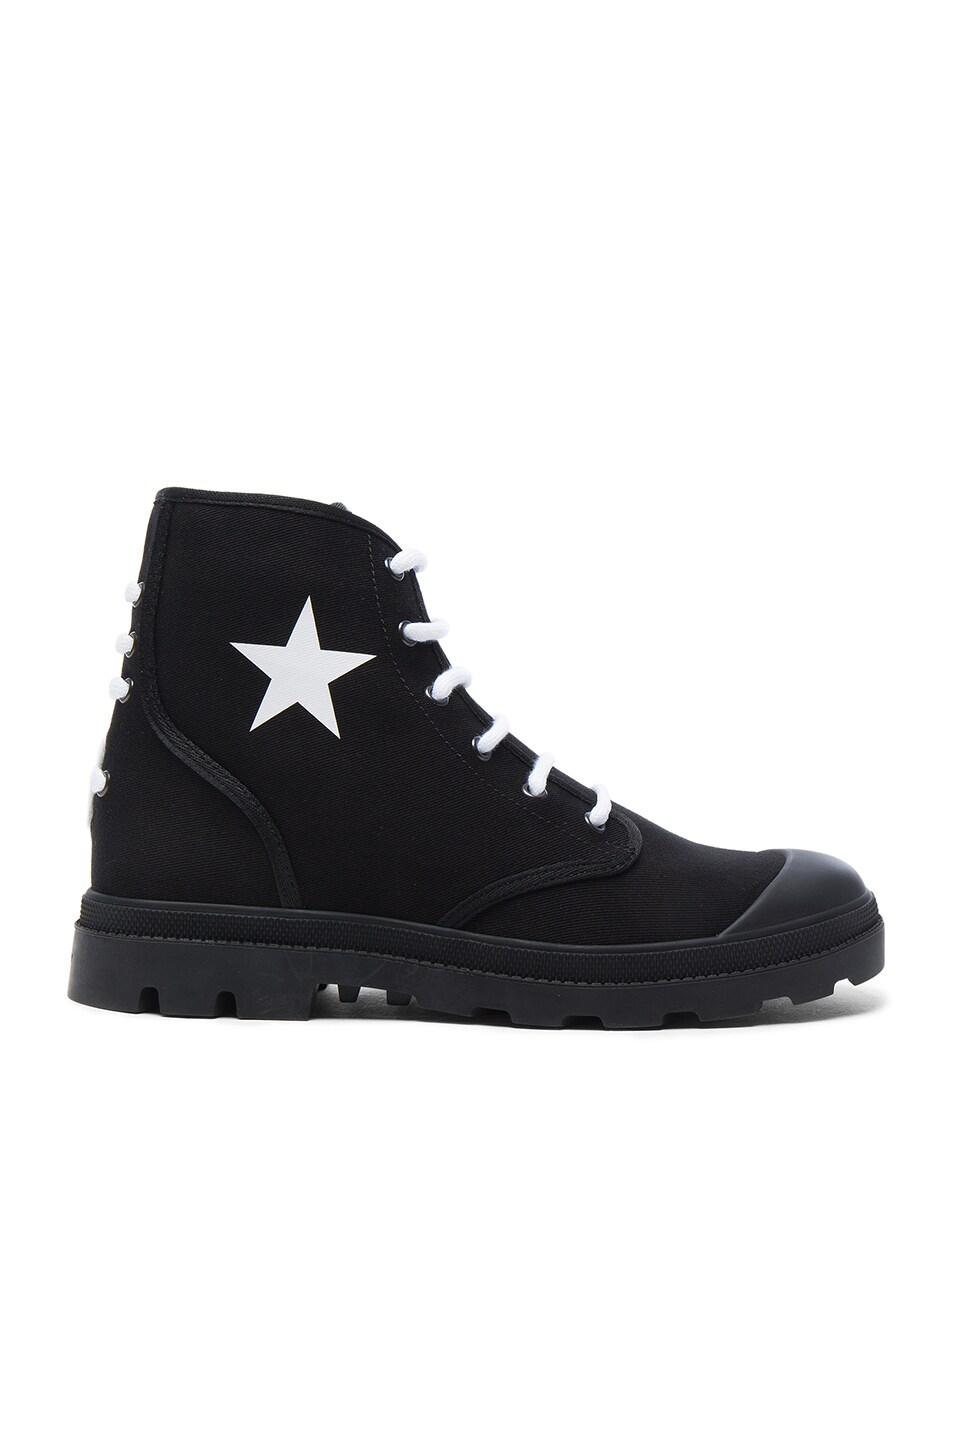 Givenchy Canvas Star Sneaker Boots in . OHTabyb